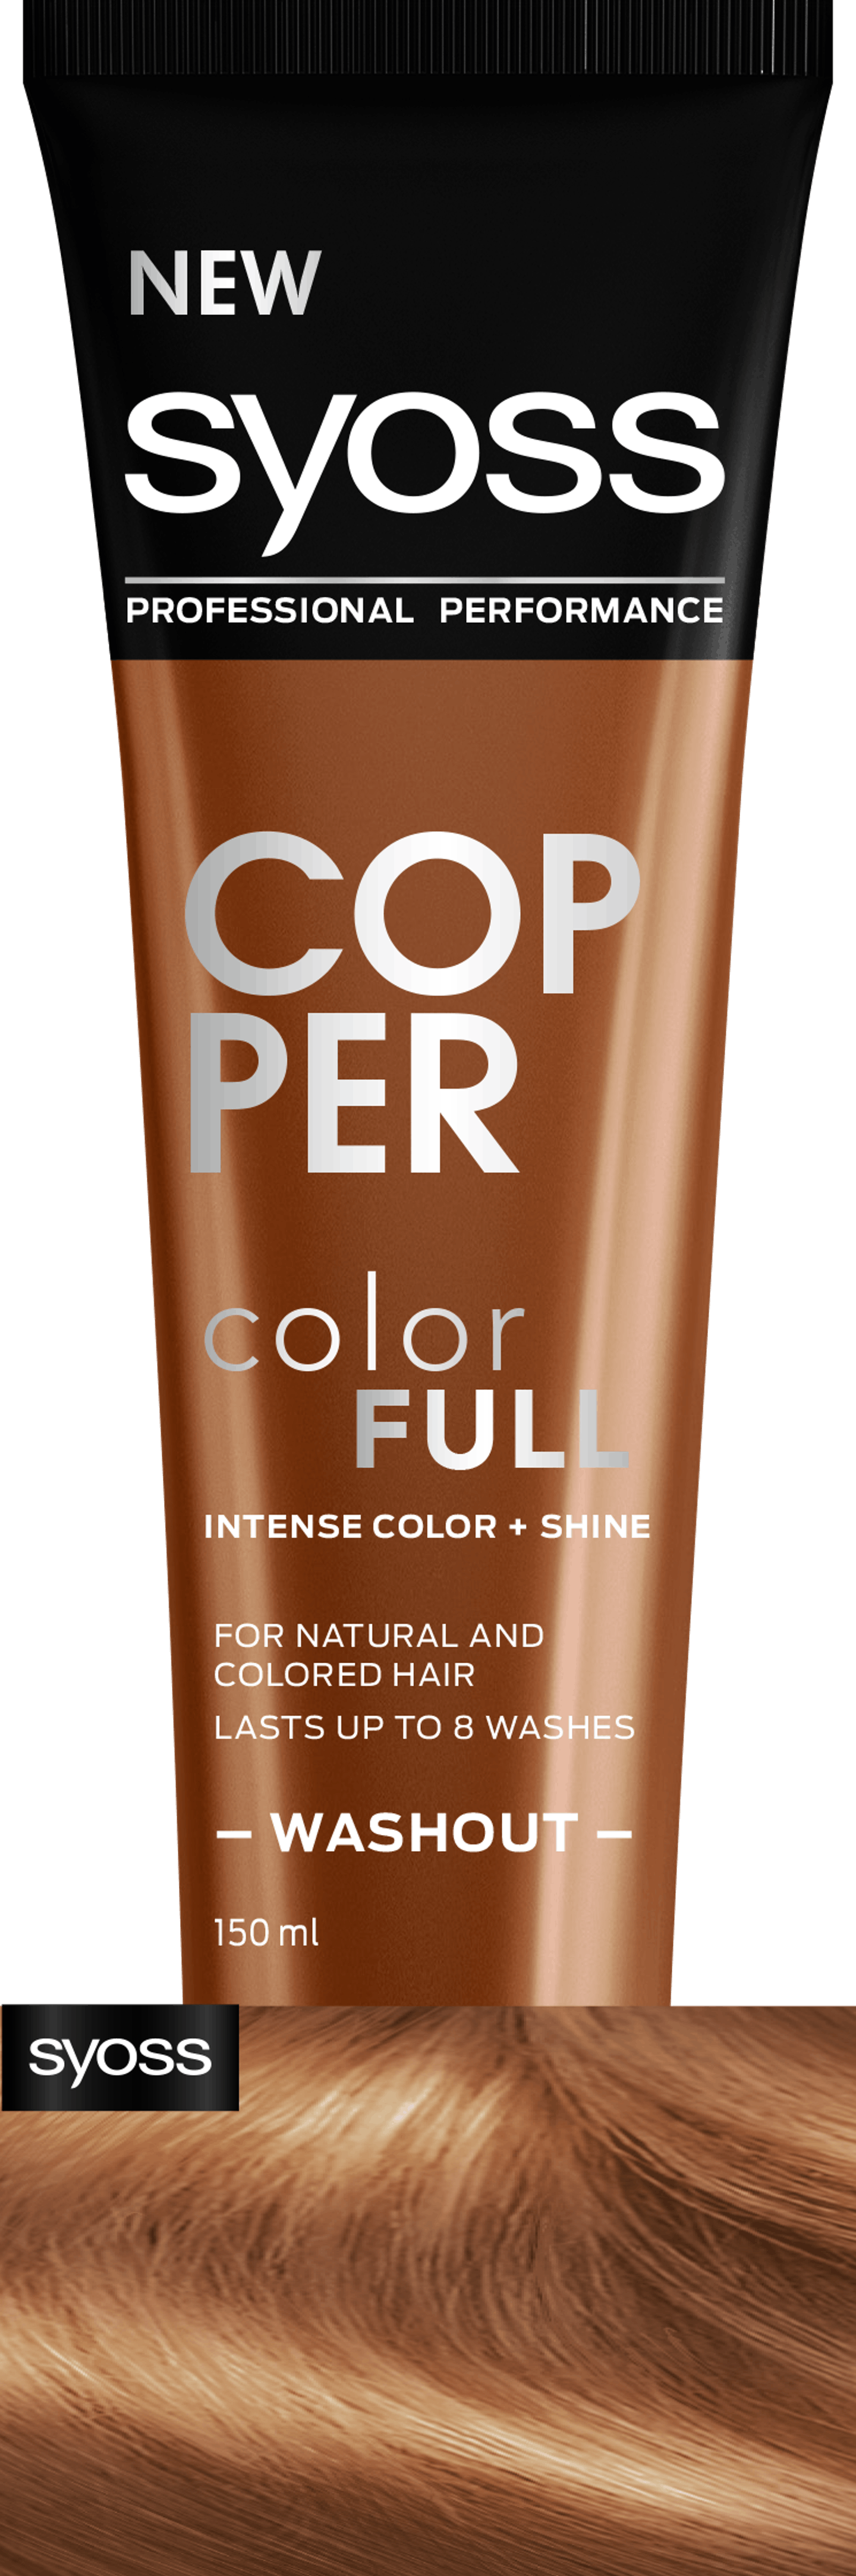 Syoss Copper Color Full